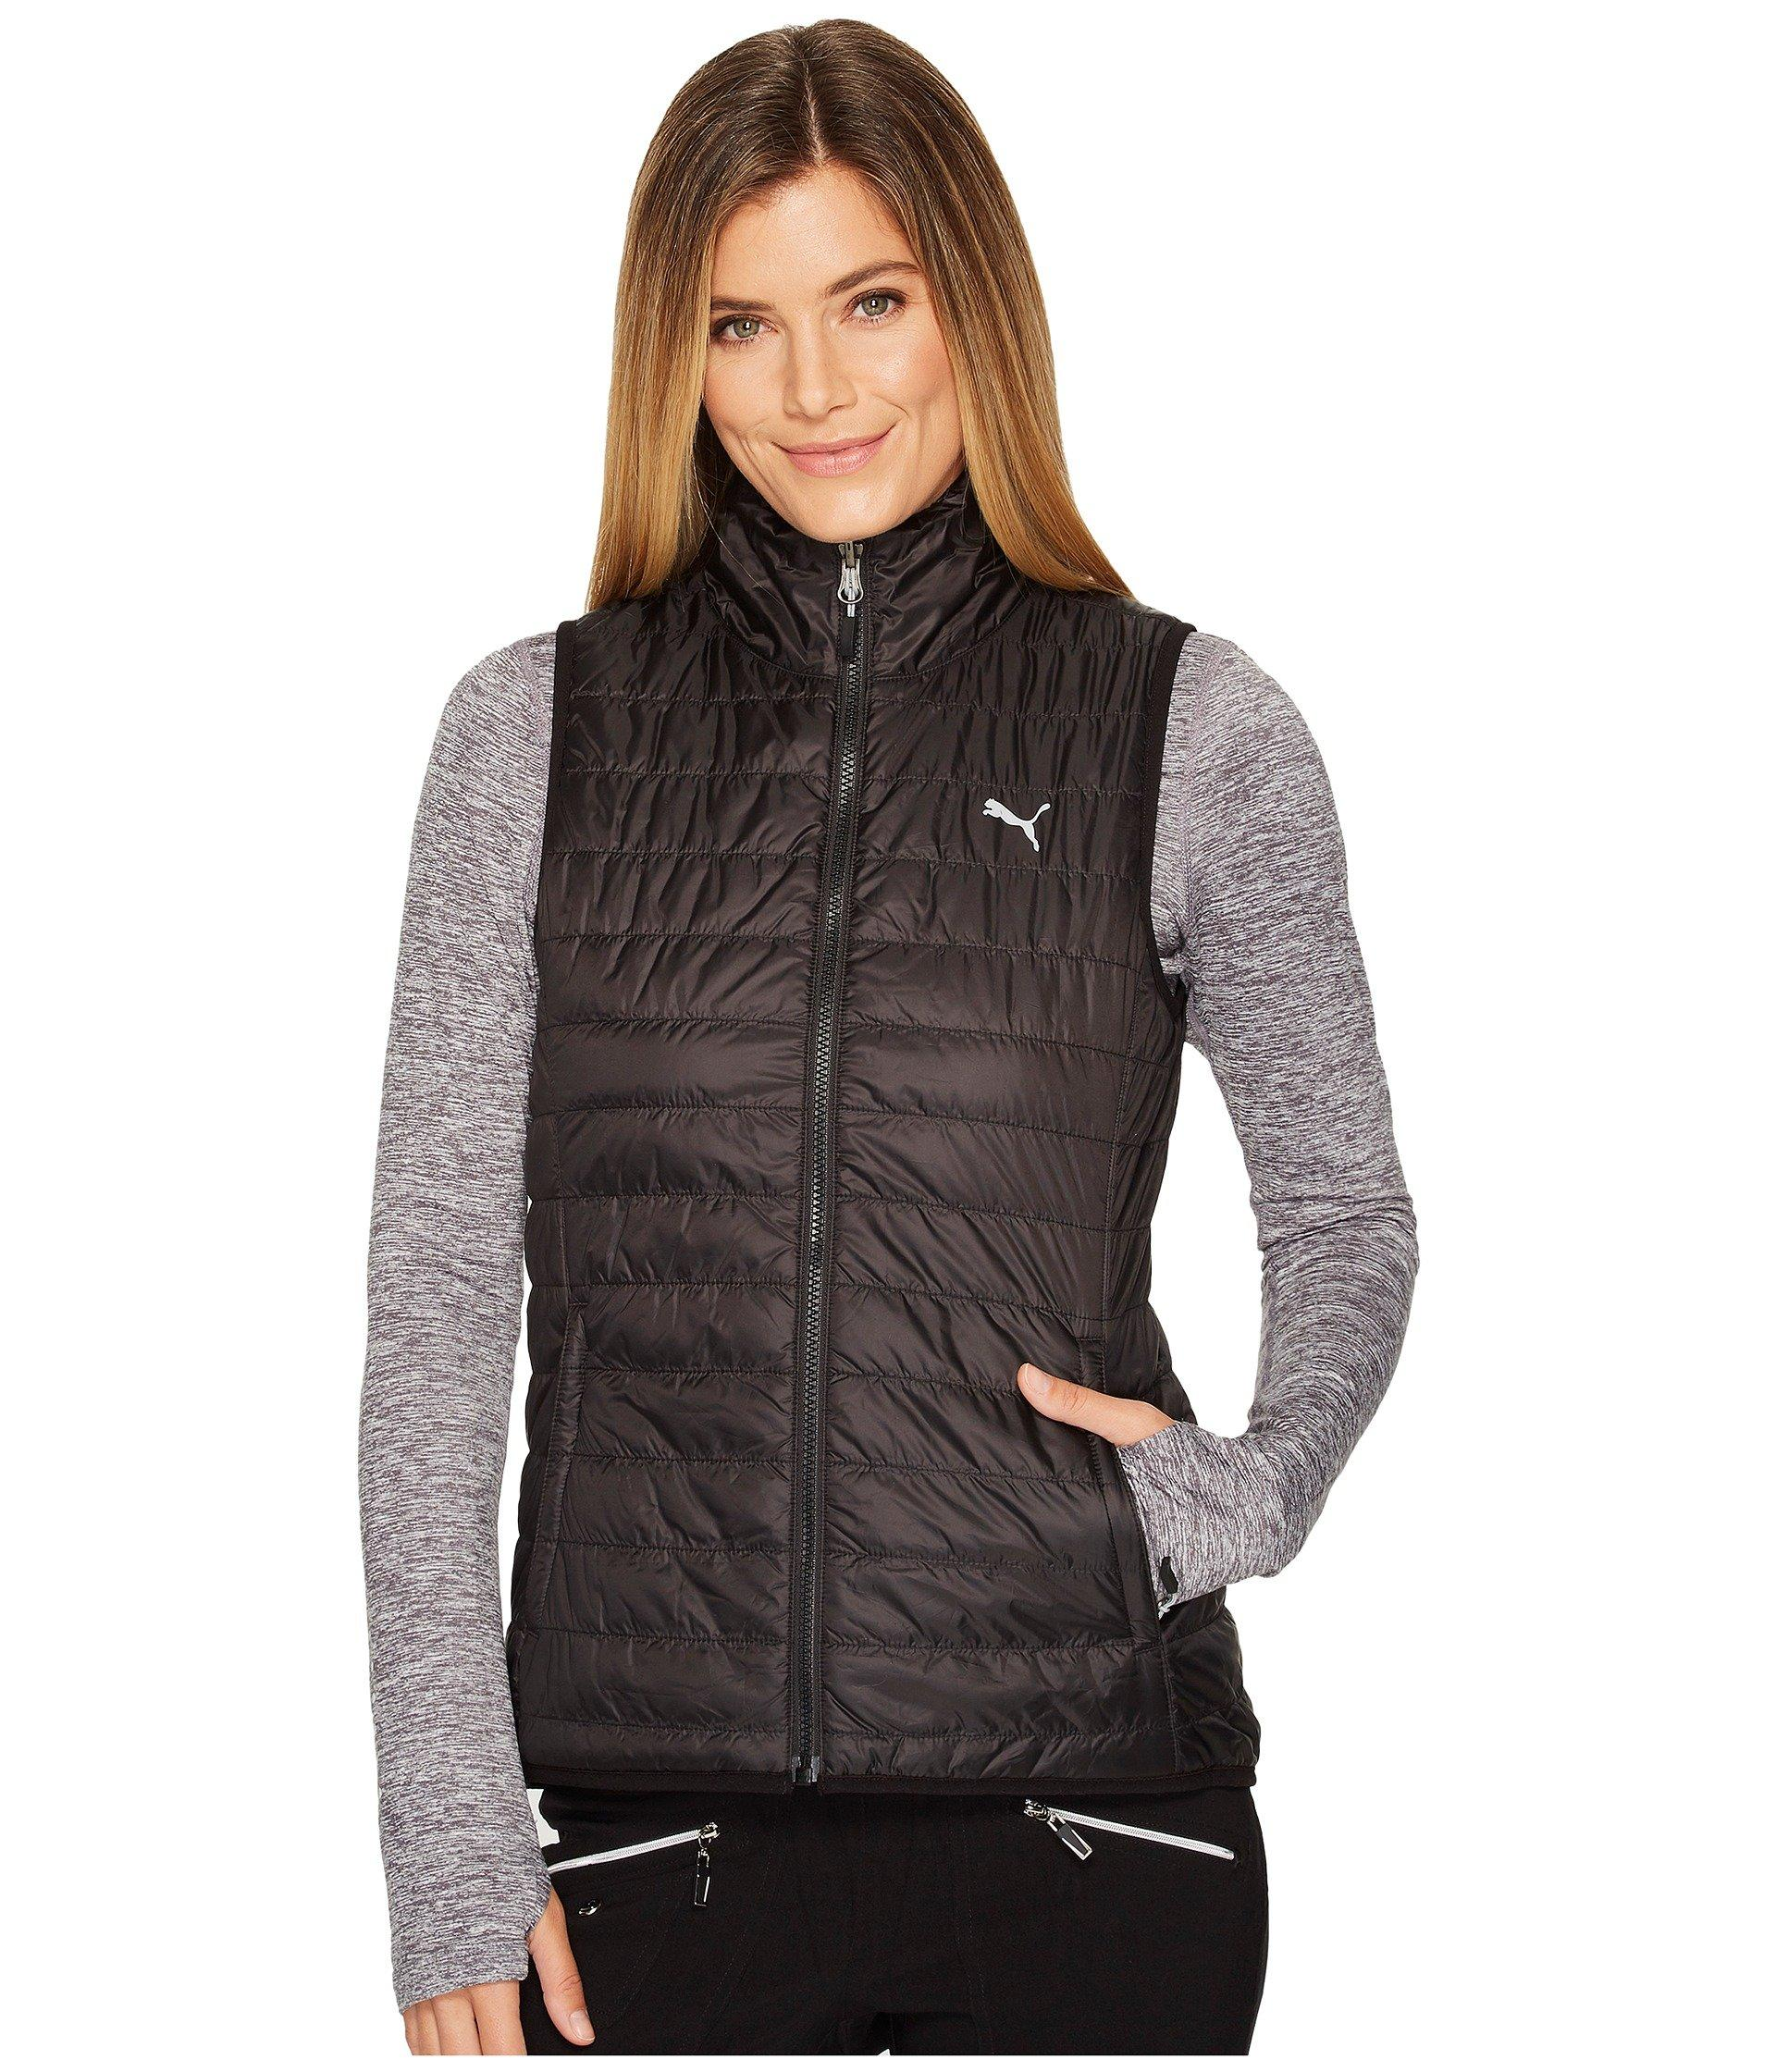 40c20e9fd02c Lyst - PUMA Pwrwarm Reversible Vest in Black - Save 13%